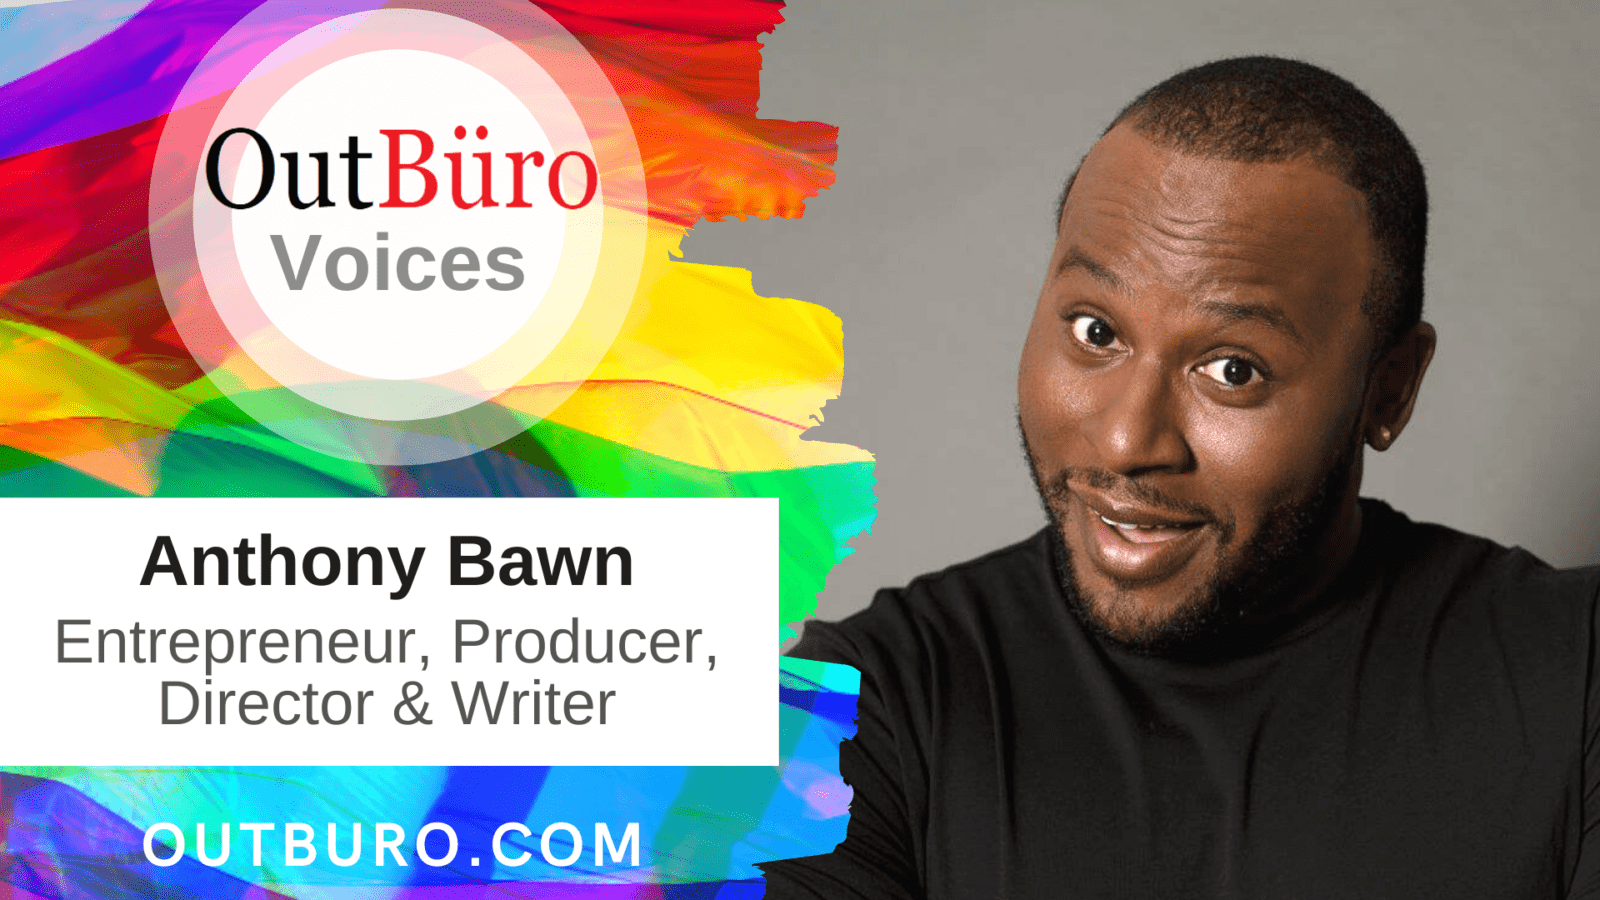 OutBüro Voices Interview Anthony Bawn LGBT Entrepreneur Producer Director Writer Vim Media Professional Startup Business Owner Video Interview Podcast